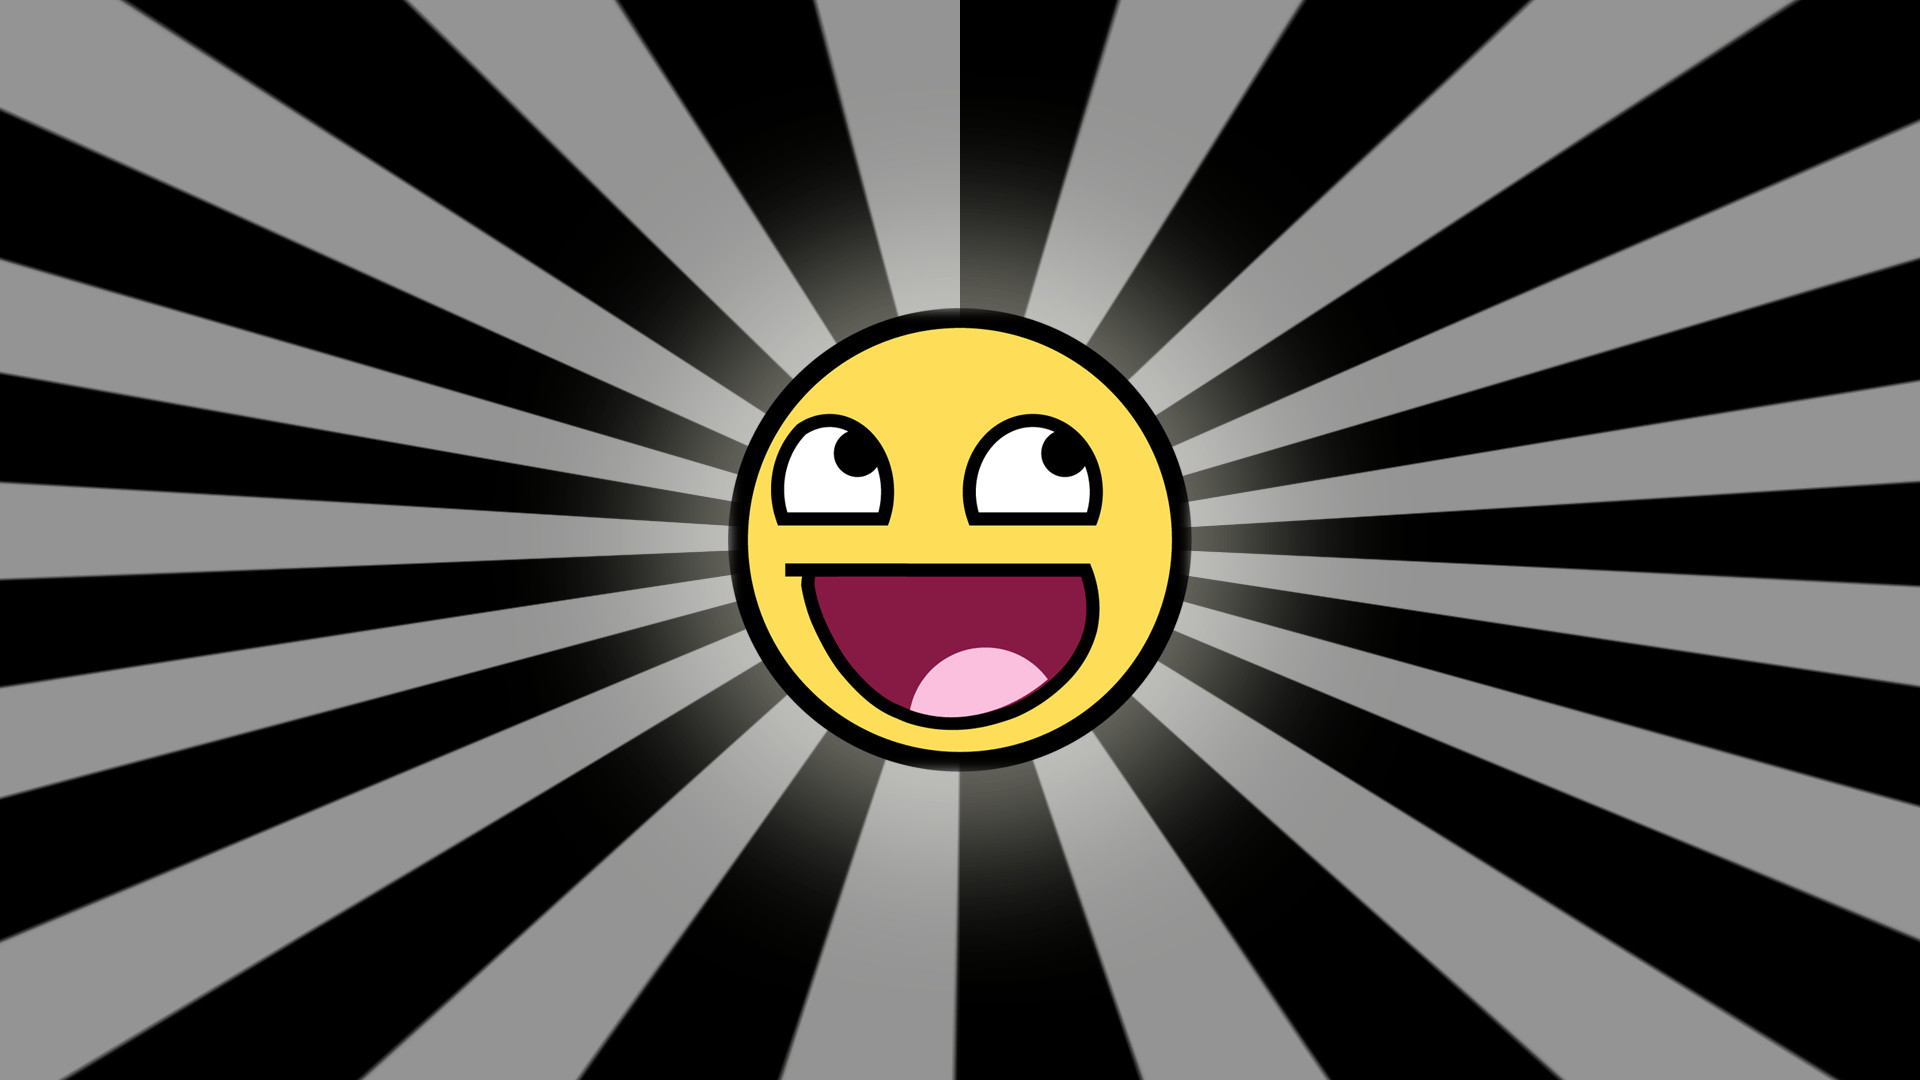 Awesome face background 1920x1080 wallpapers for awesome face background voltagebd Image collections